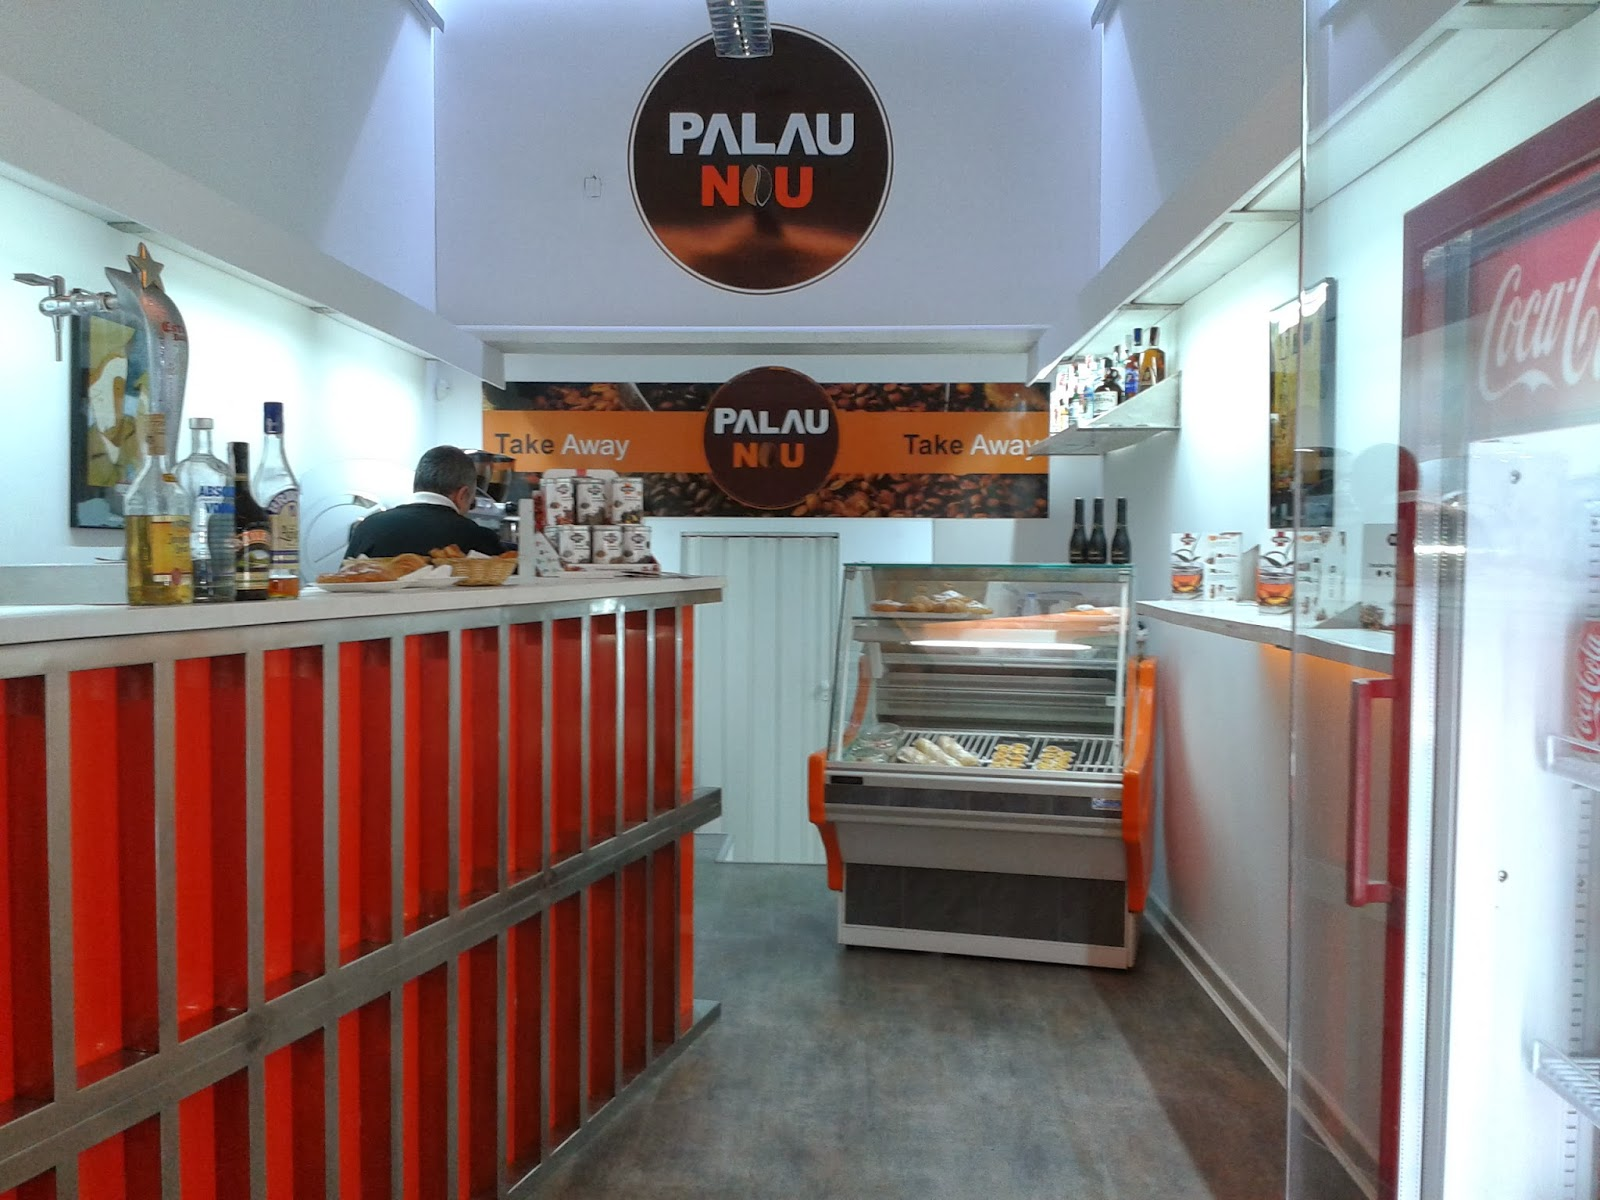 Palau Nou Take Away